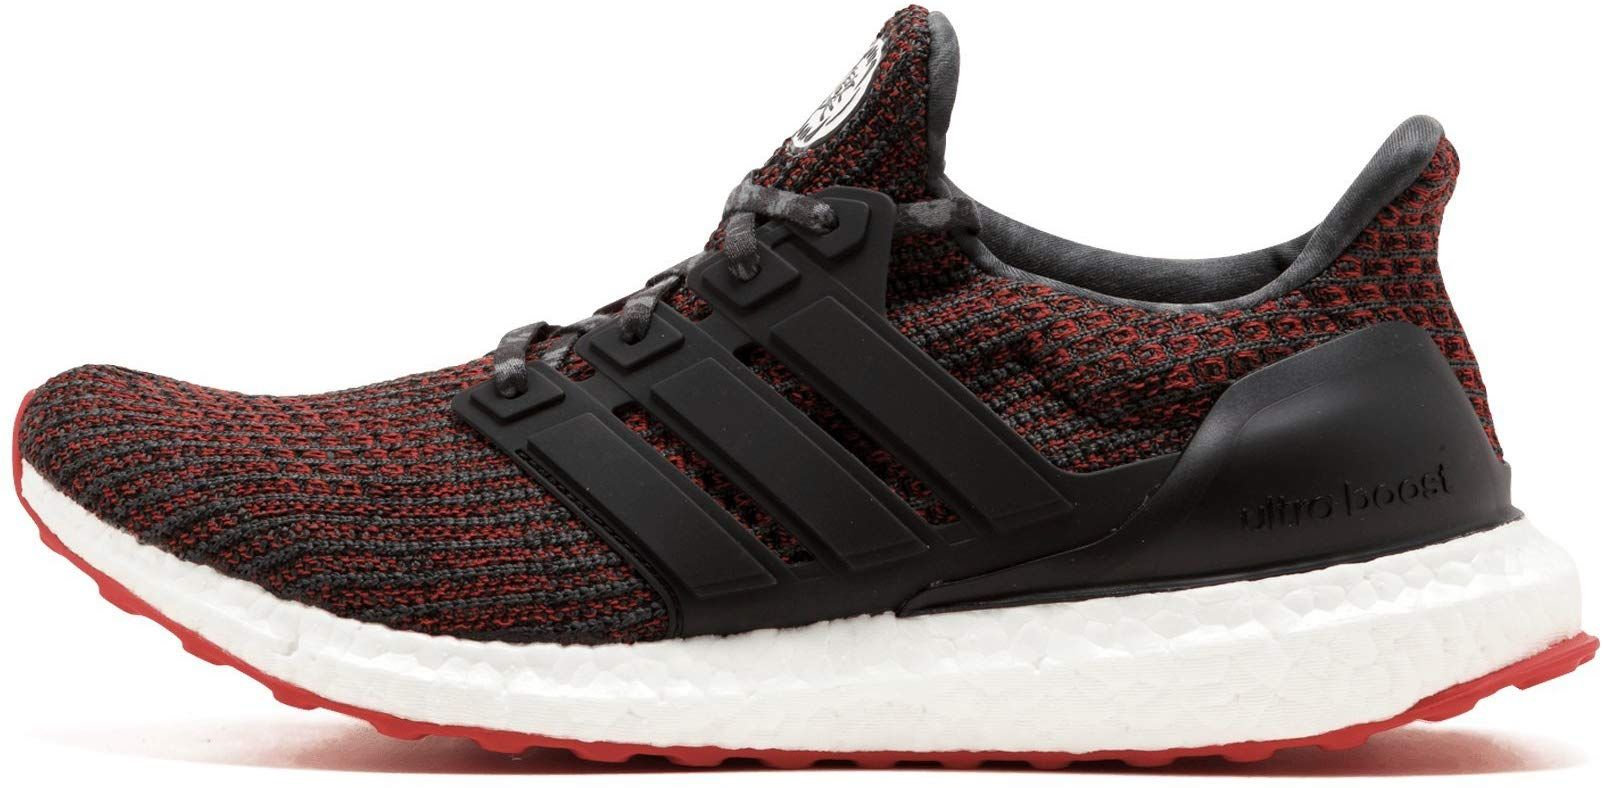 eaf4609c2d61a adidas Ultraboost - US 6.5 #Amazon #Fashion #Adidas #Yeezy ...